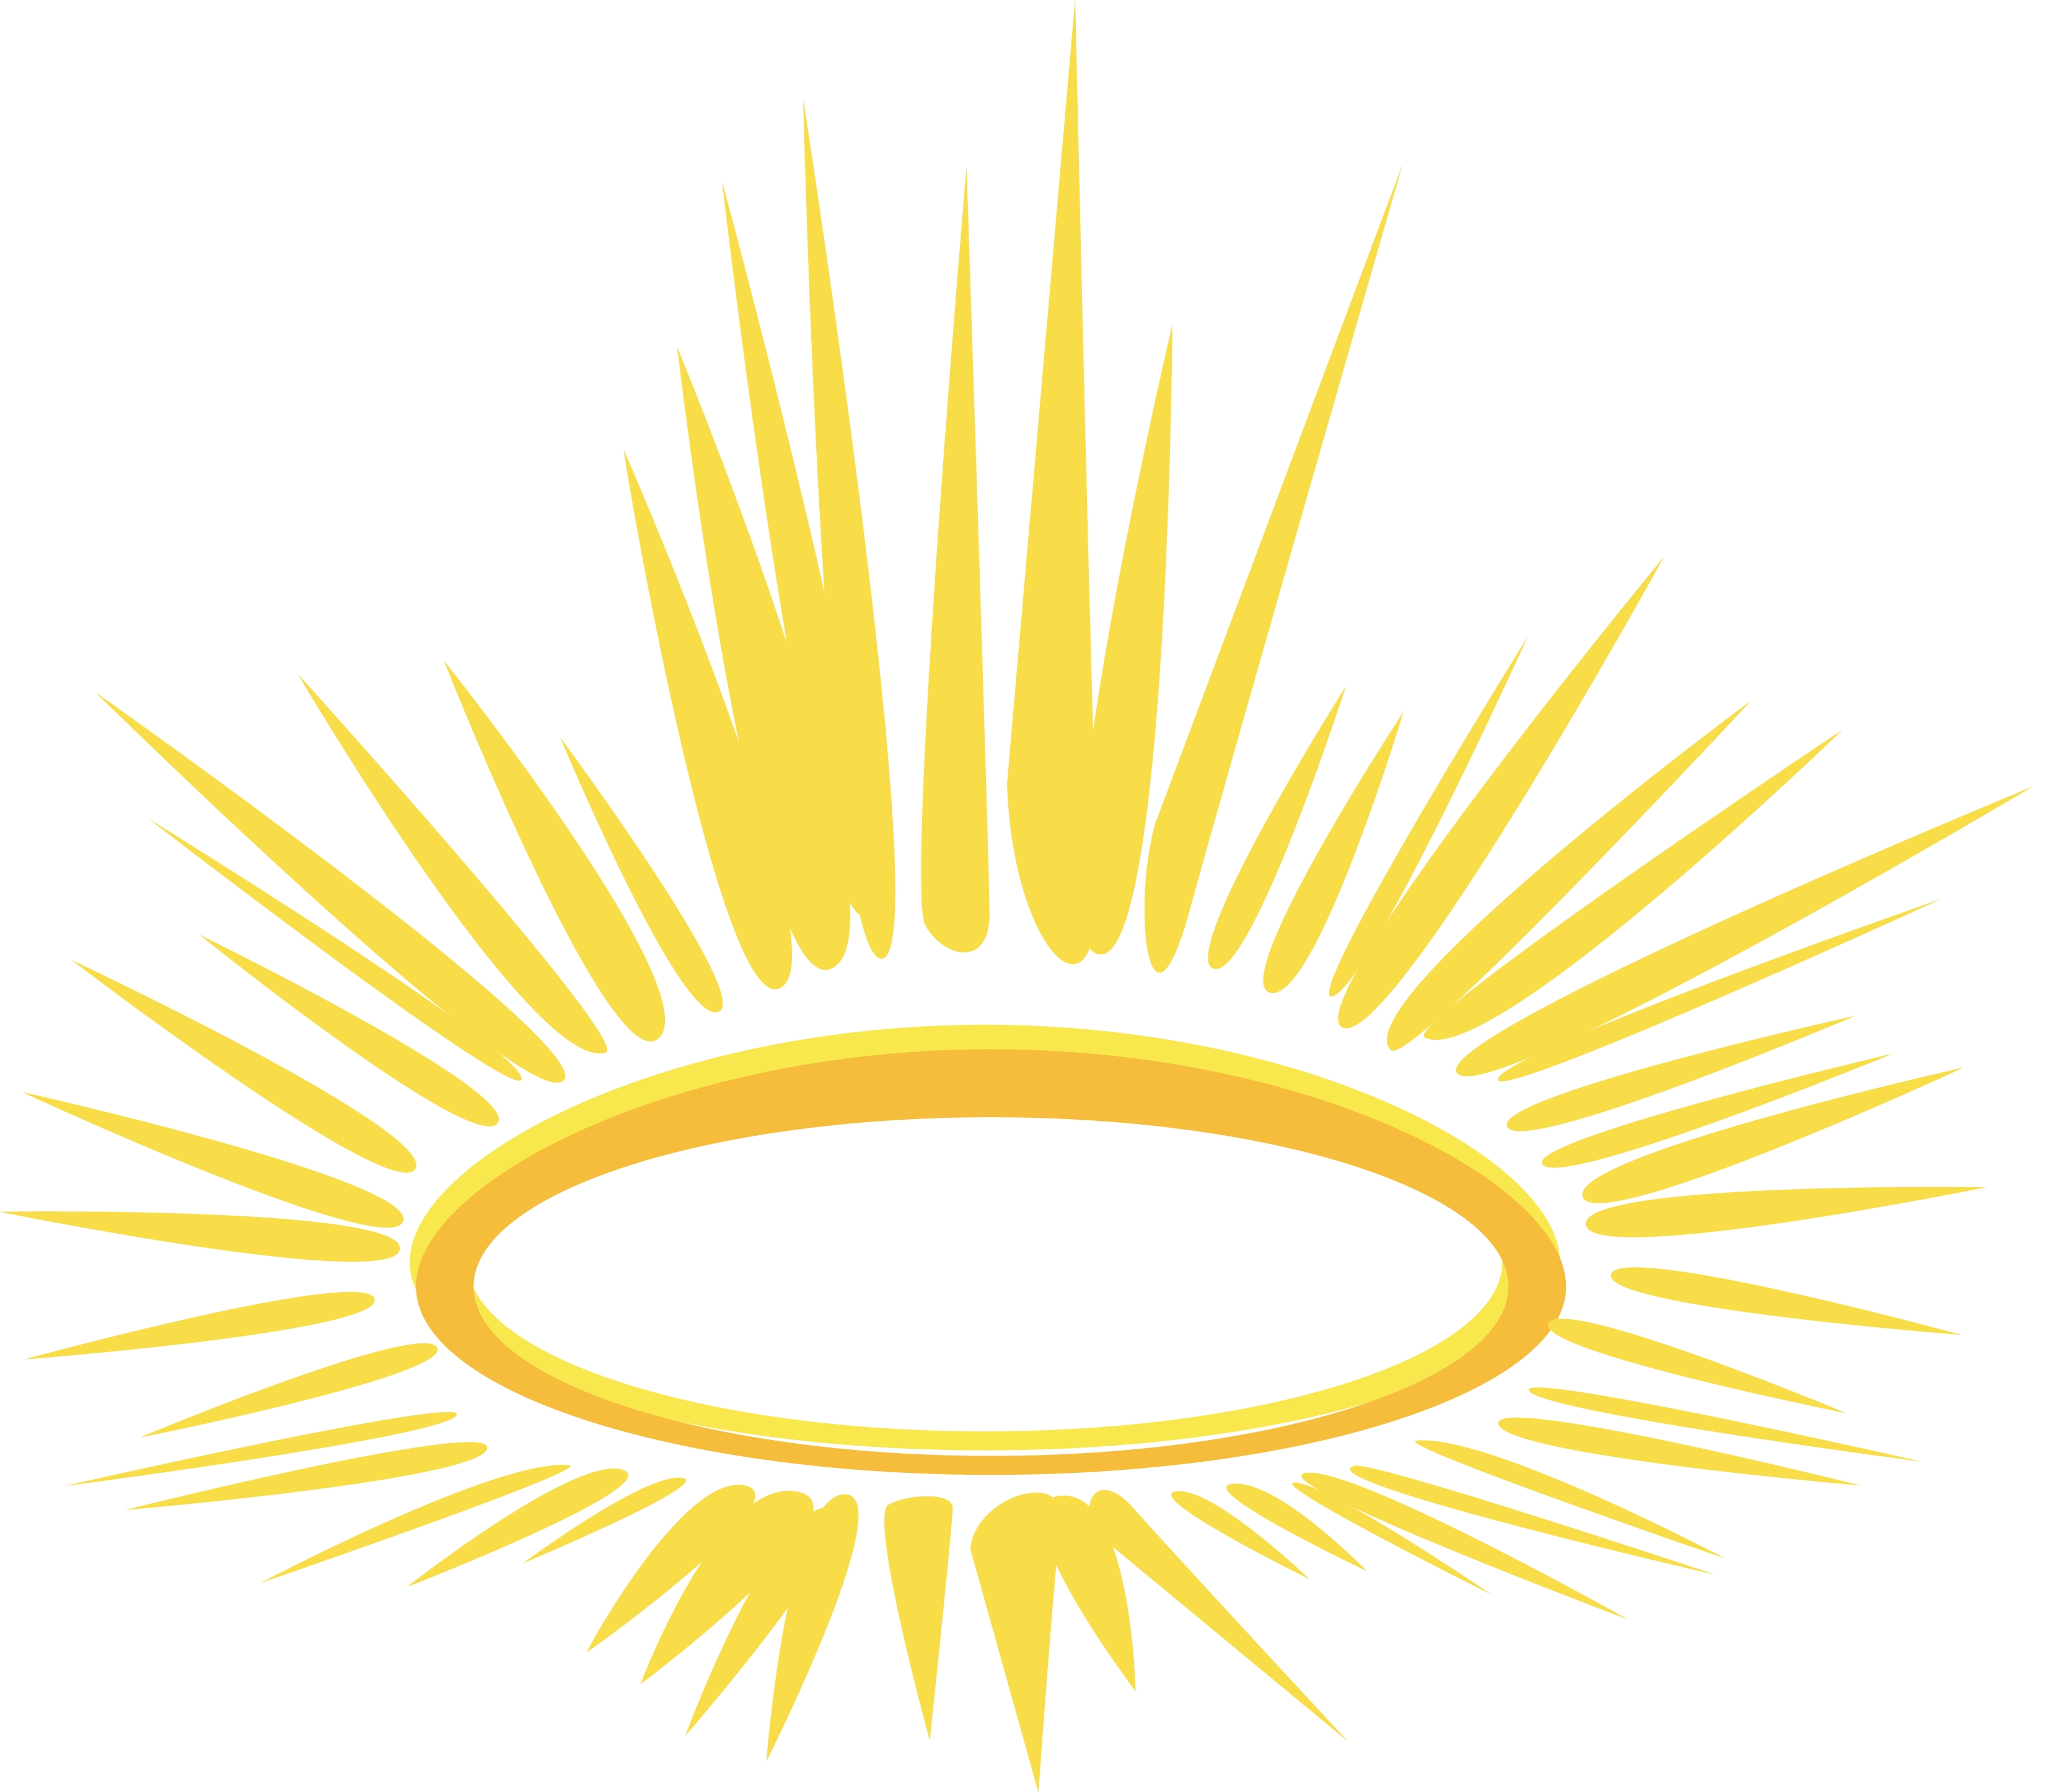 Free Saint Halo Cliparts, Download Free Clip Art, Free Clip.